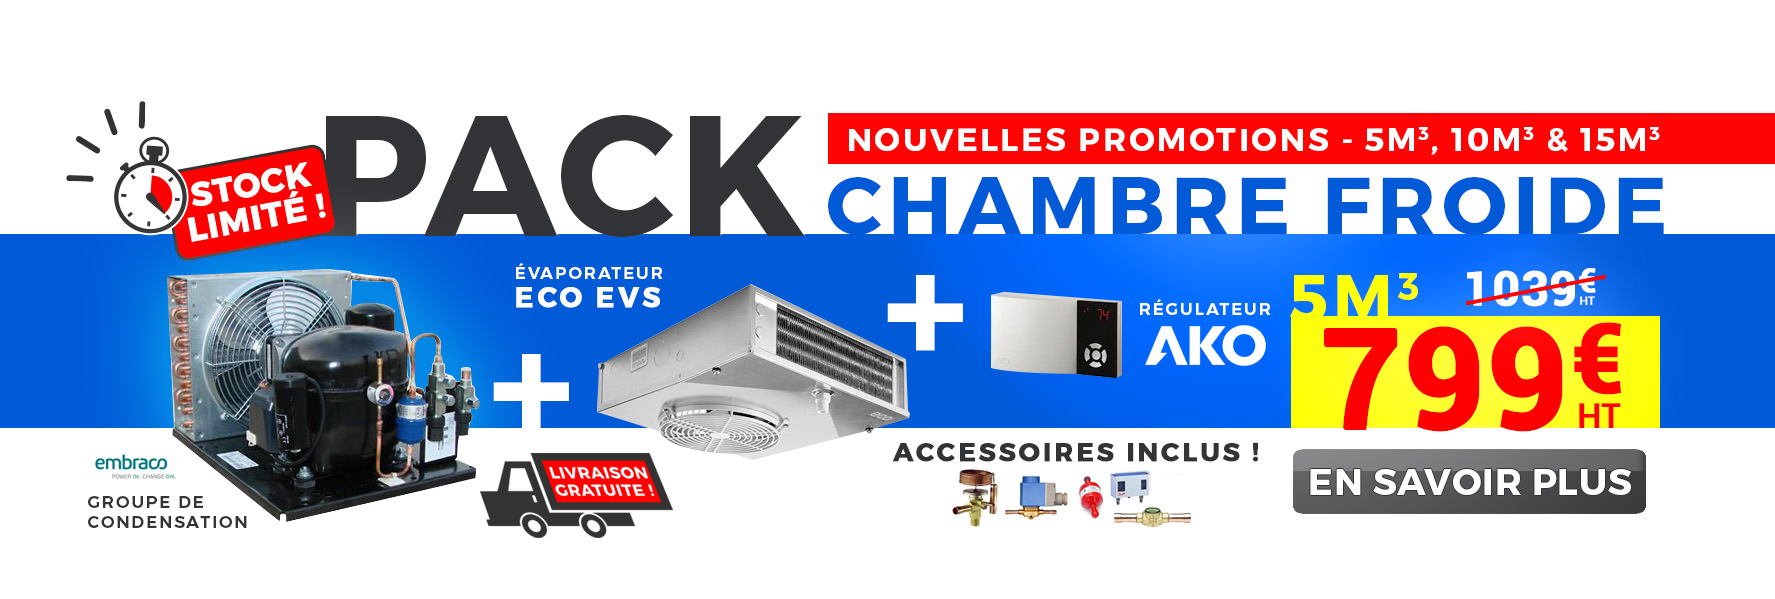 483054pack-chambrefroide-promo-5m3